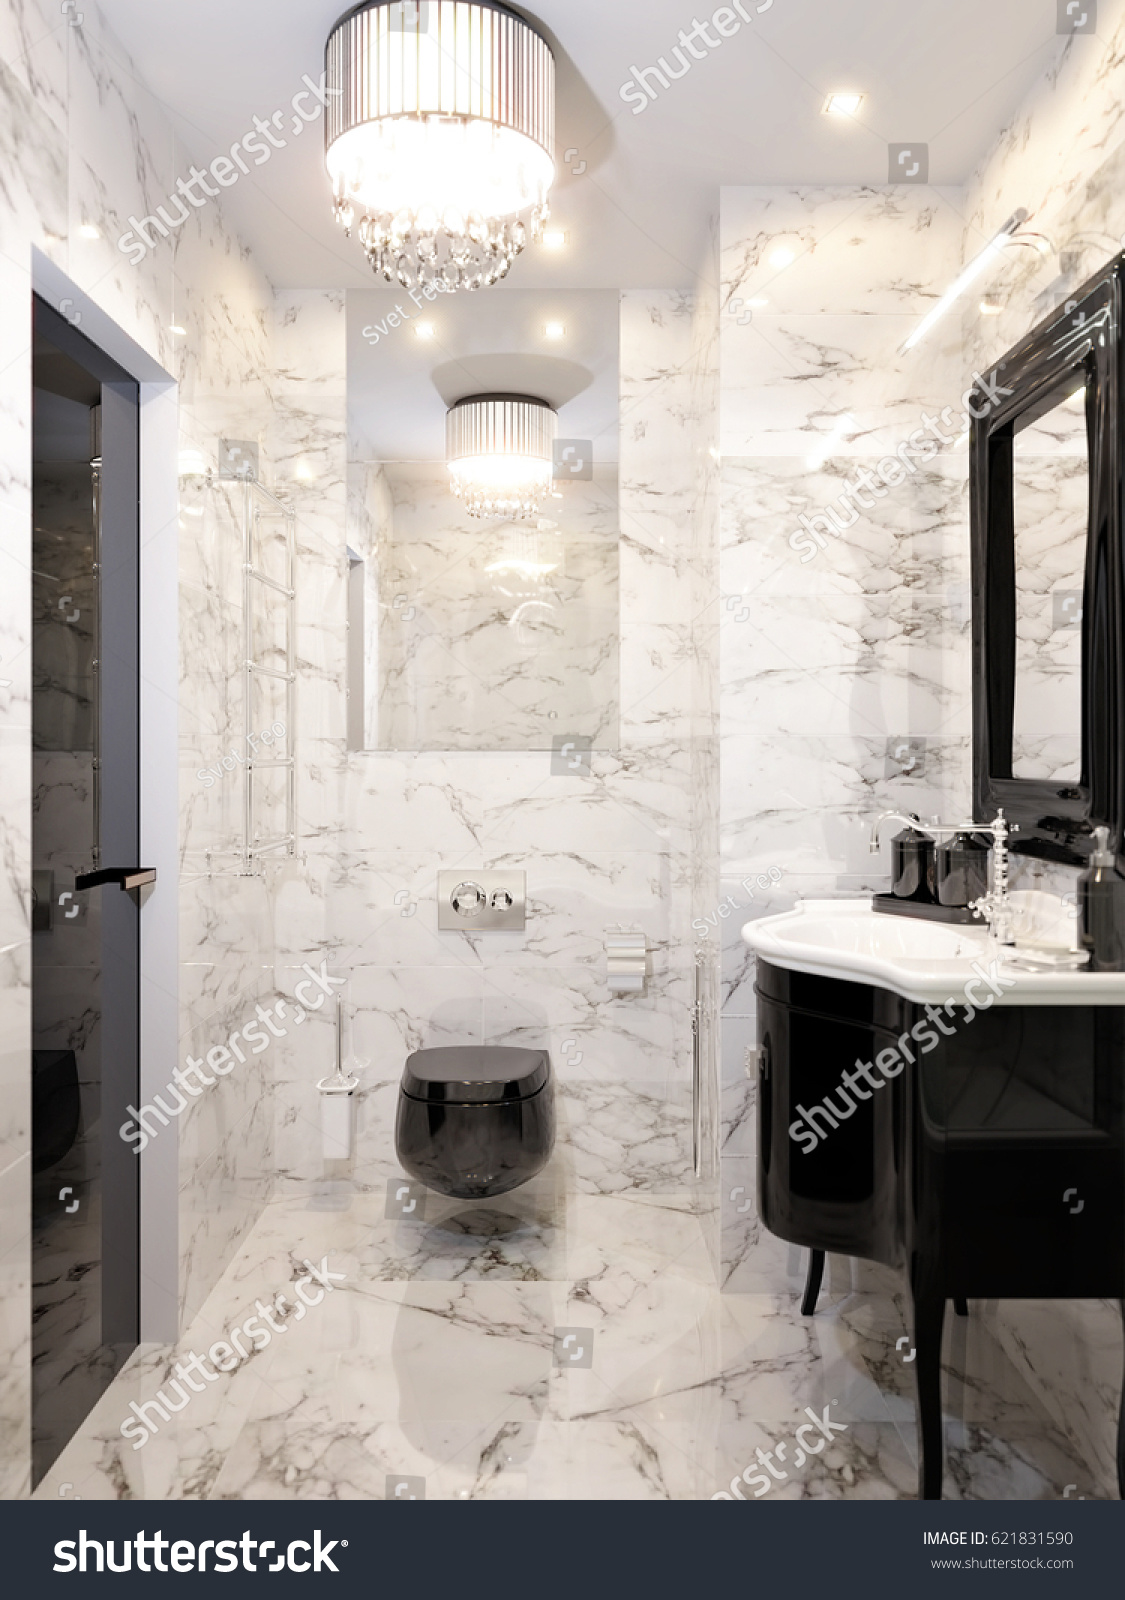 Art Deco Bathroom Modern Art Deco Bathroom Interior Design Stock Illustration